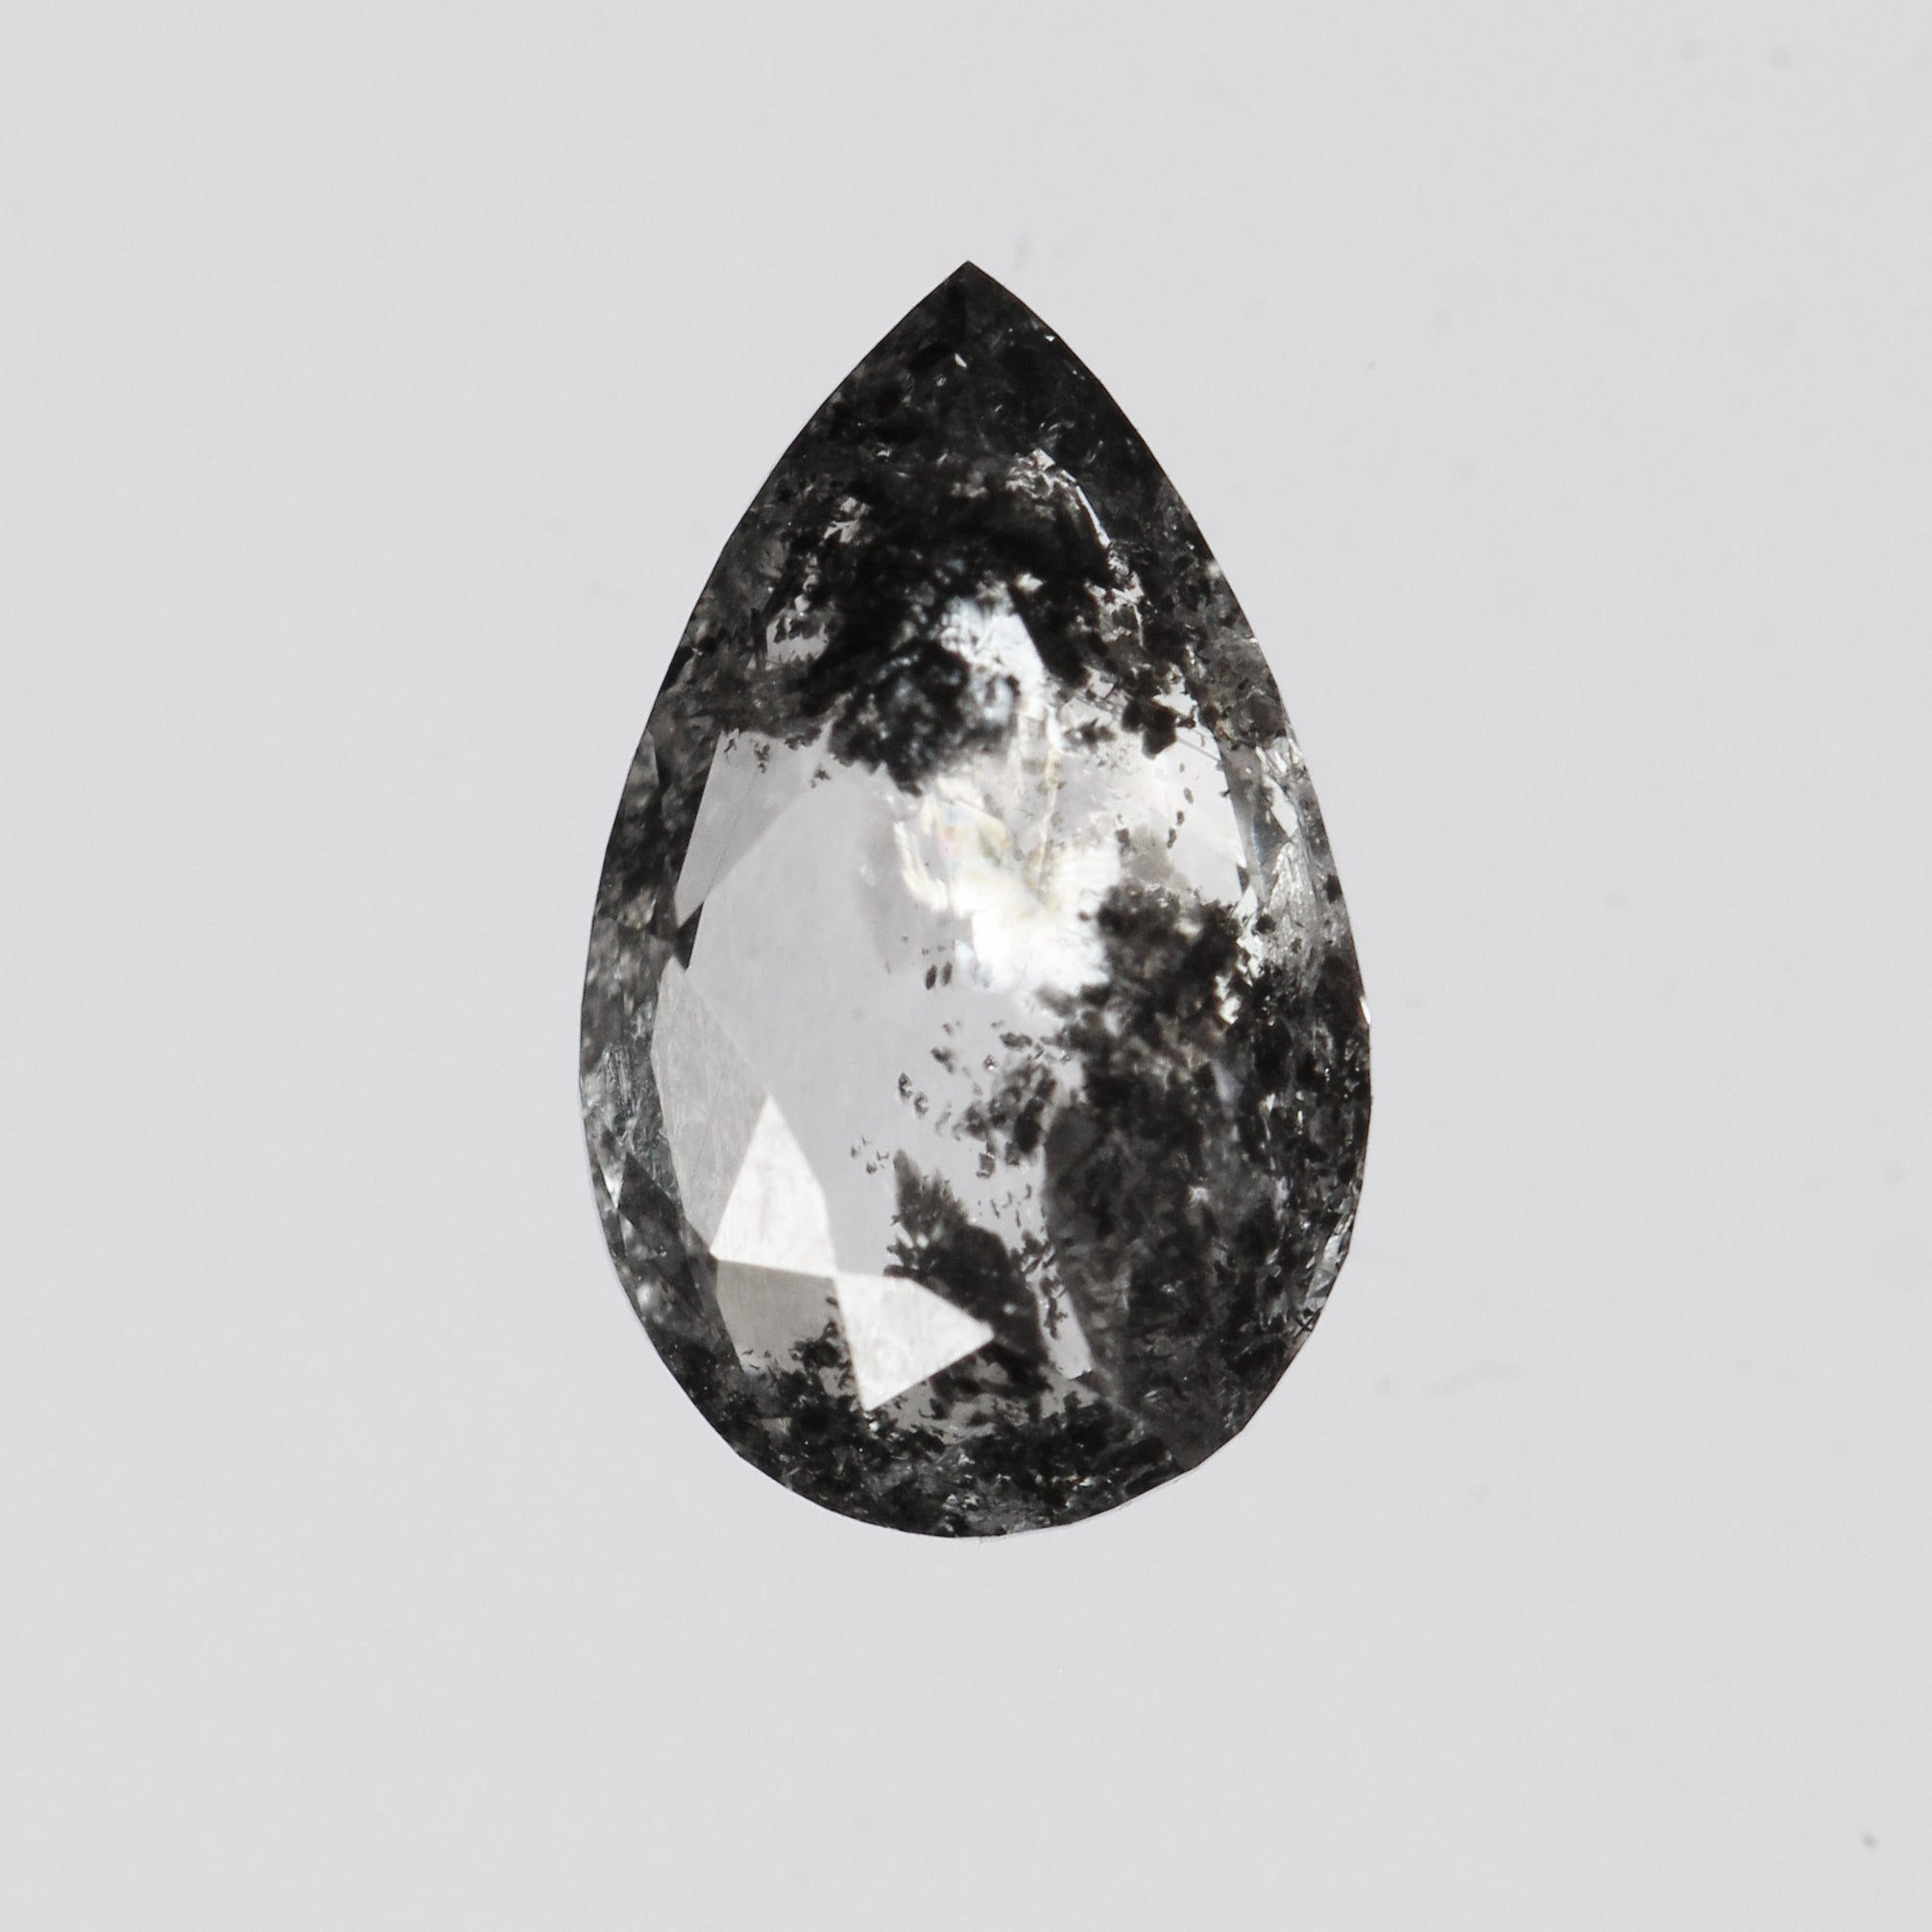 .84 Carat Pear Celestial Diamond for Custom Work - Inventory Code DCRP84 - Midwinter Co. Alternative Bridal Rings and Modern Fine Jewelry